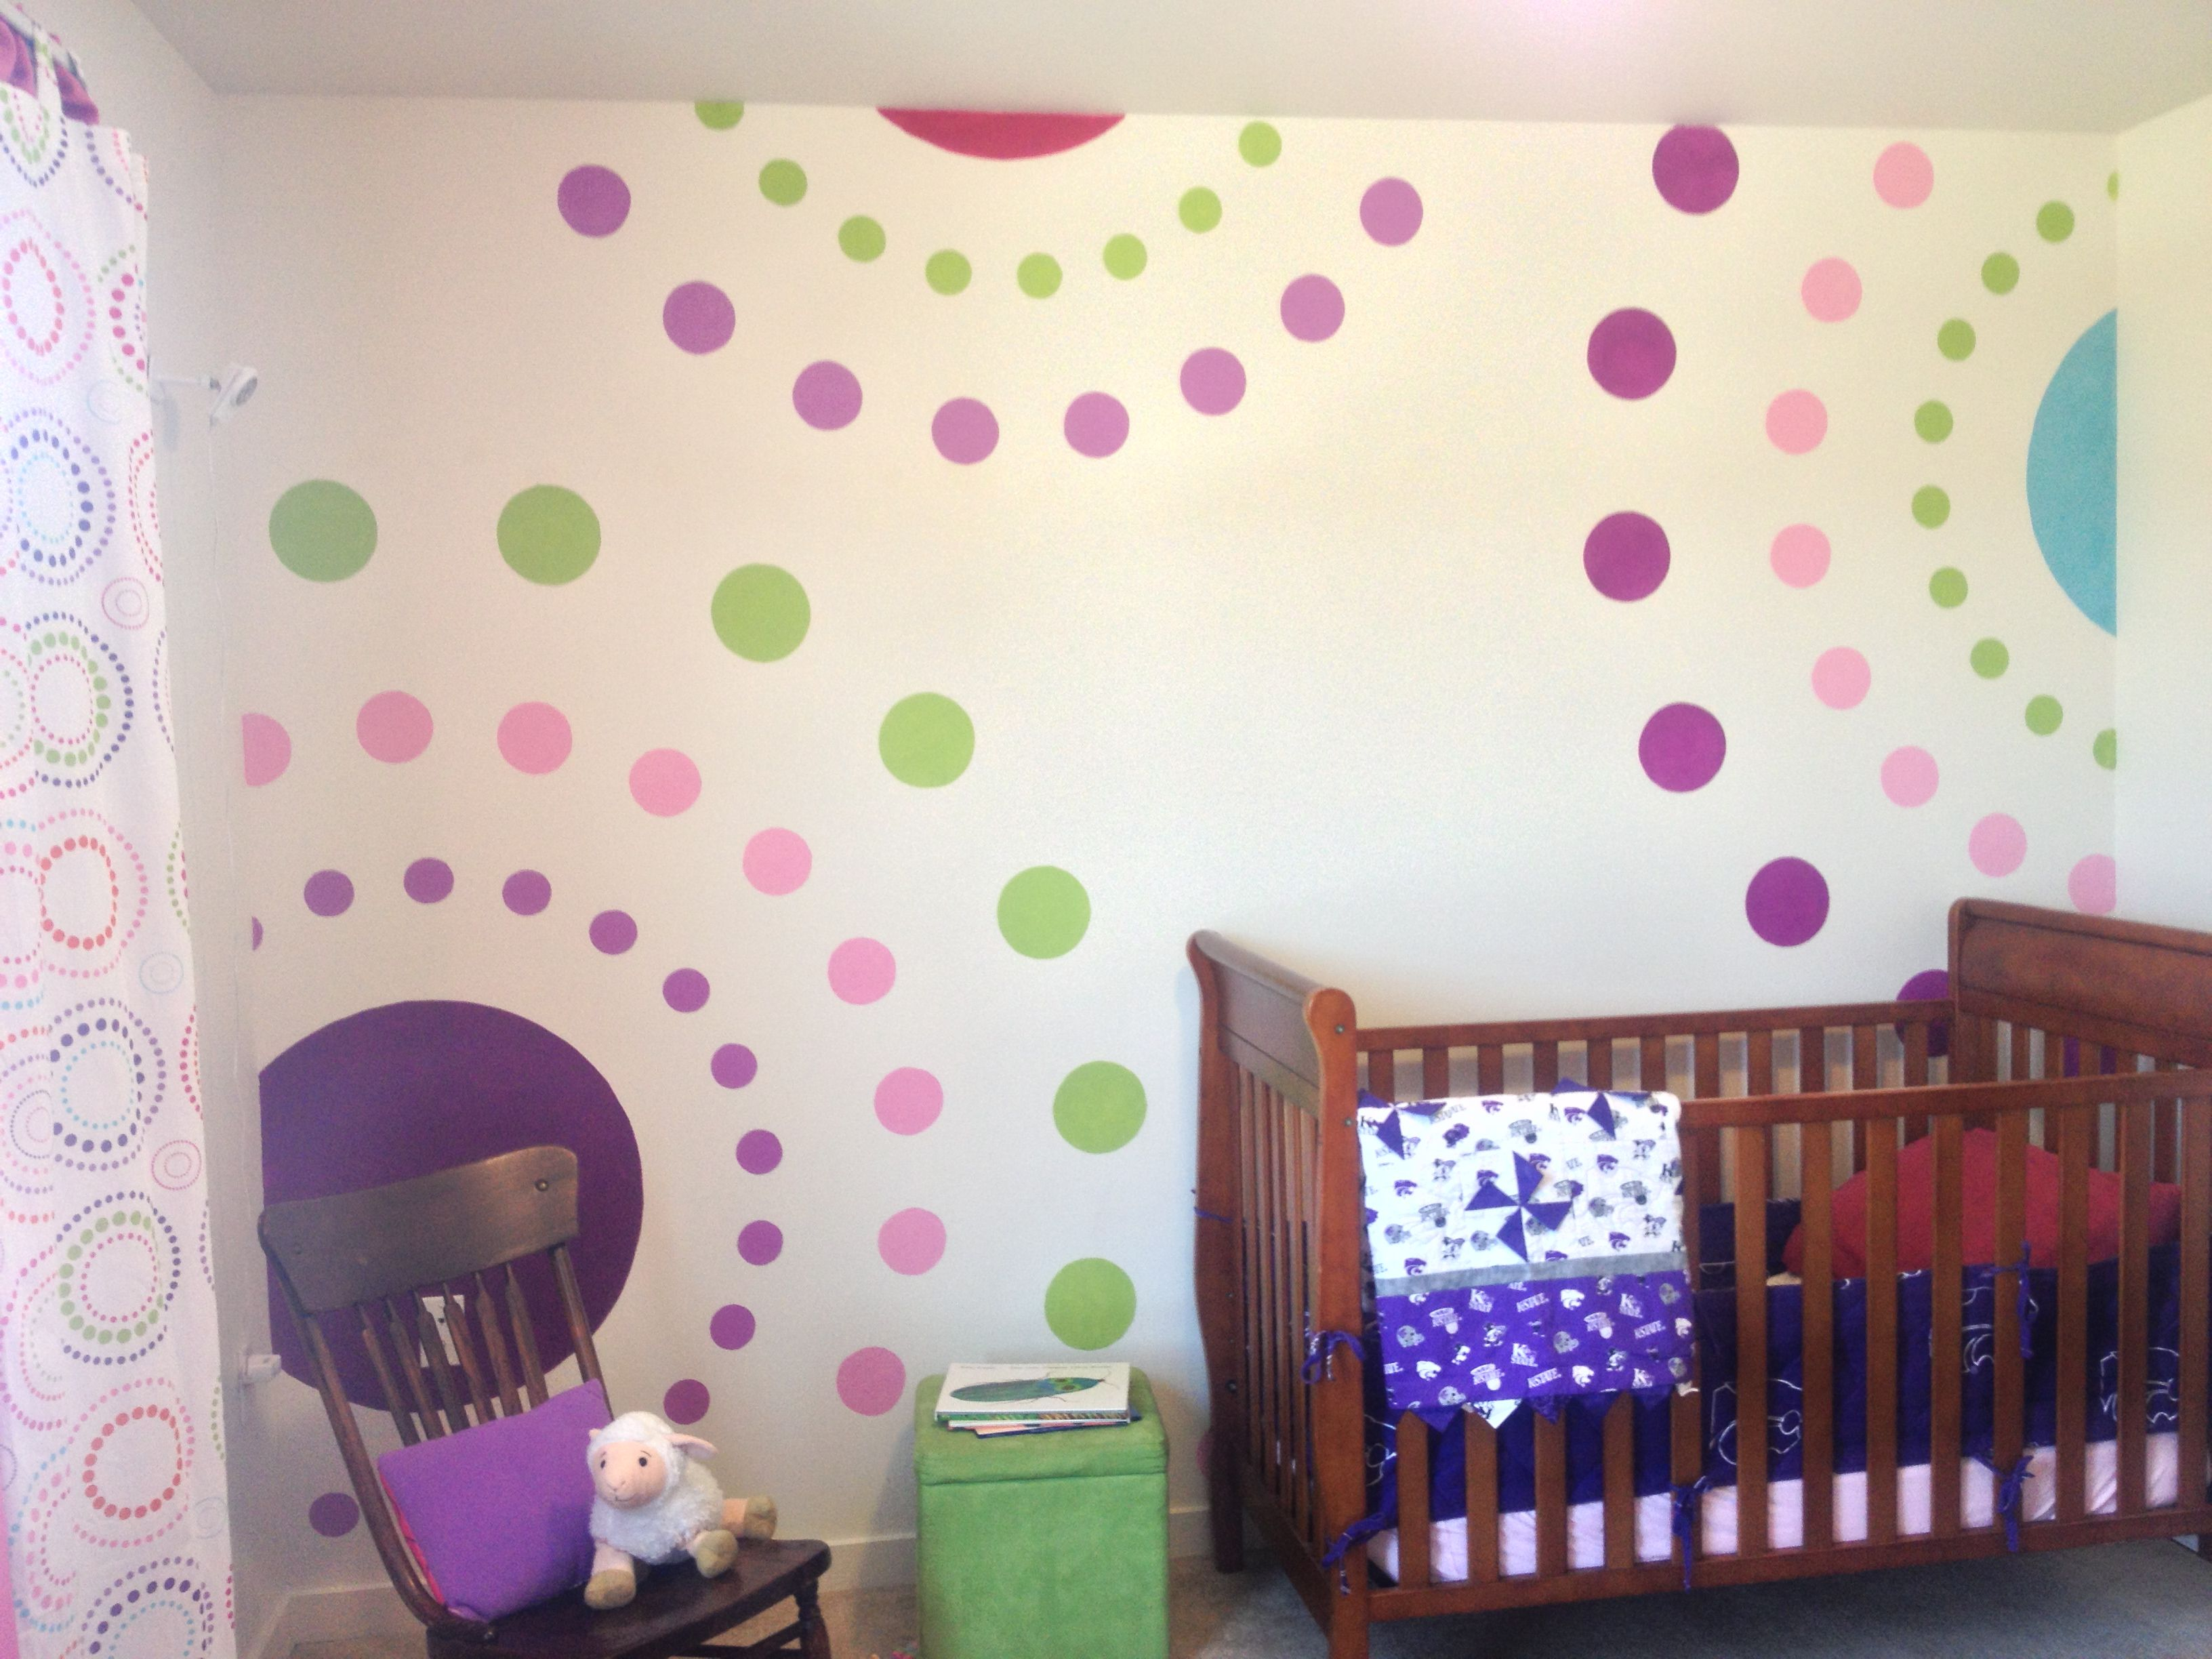 Polka dot wall mural with stencil super easy girls riom polka dot wall mural with stencil super easy girls riom amipublicfo Choice Image